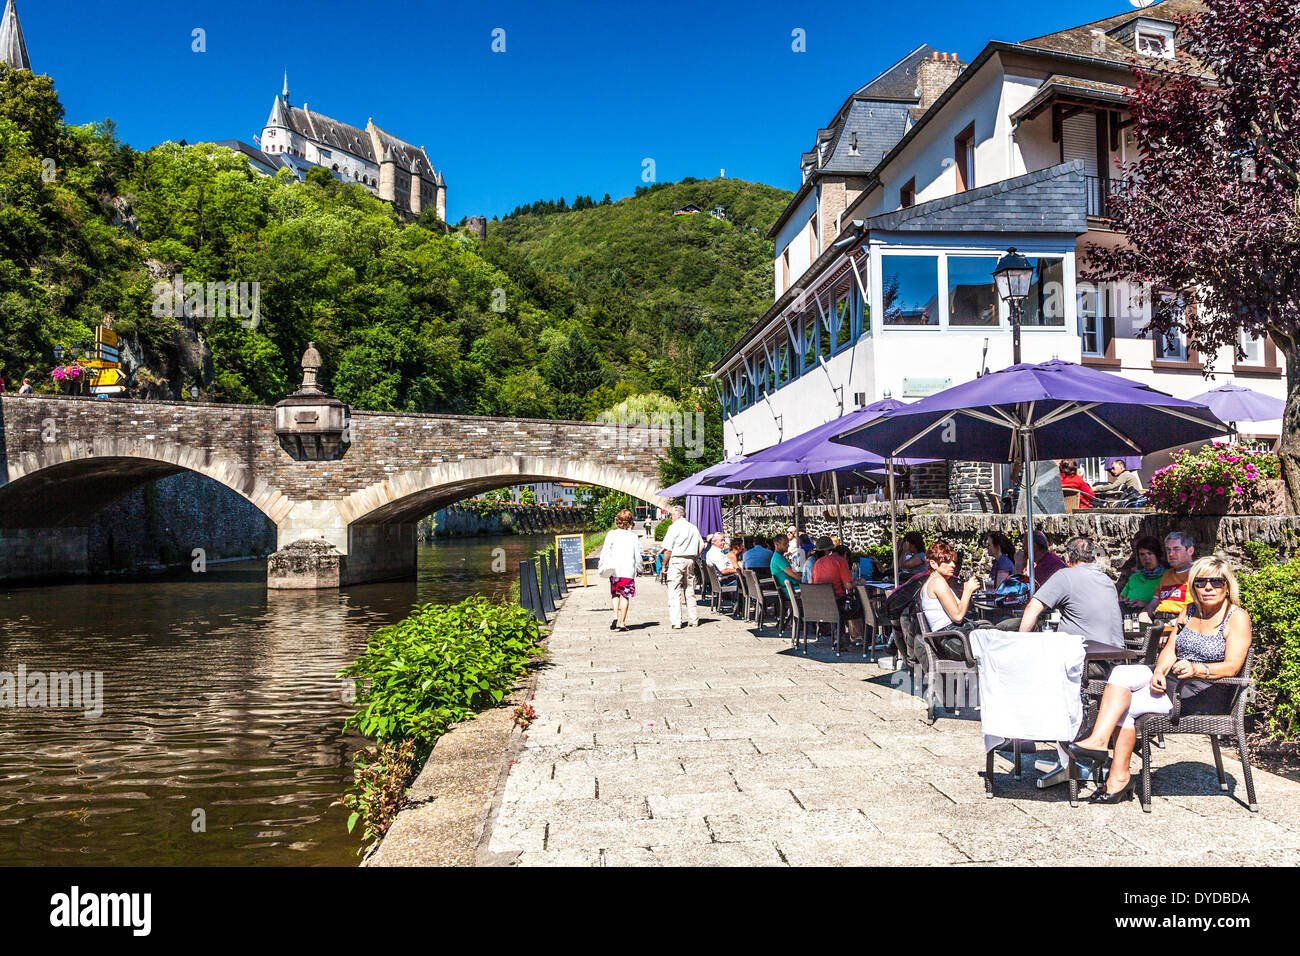 View of the castle at Vianden in Luxembourg from the river Our below. - Stock Image